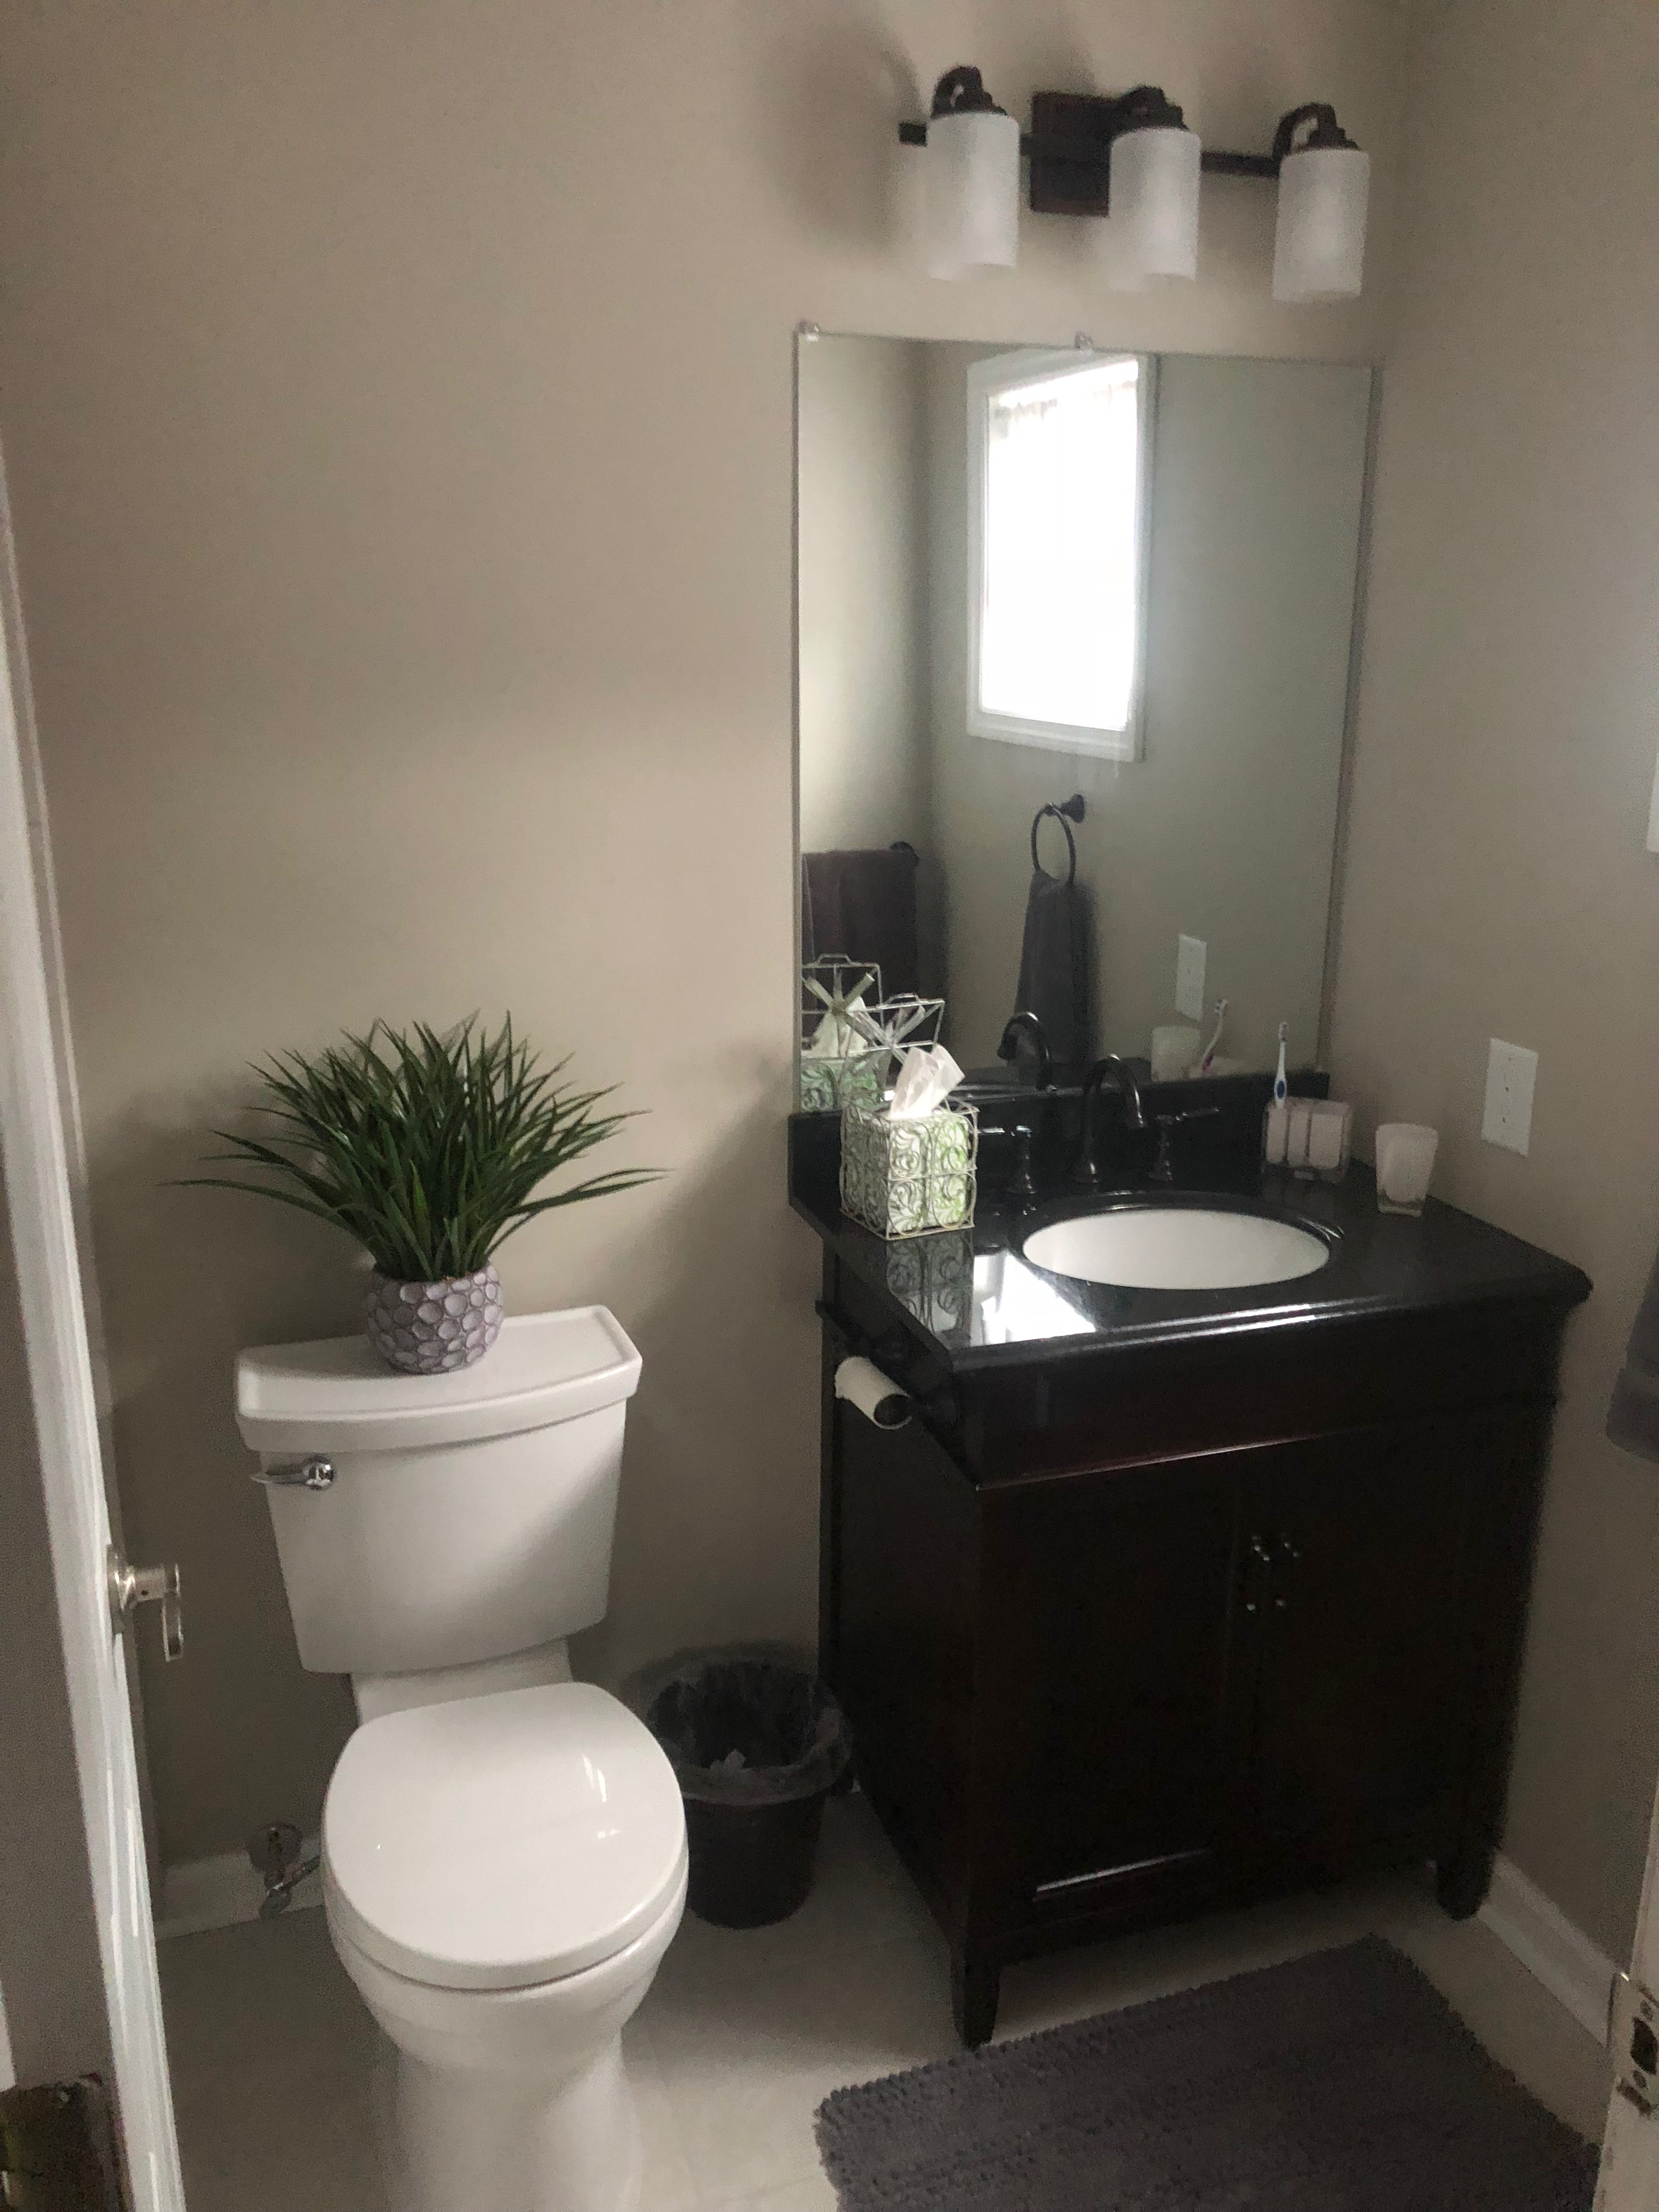 Bathroom Renovation In Williamstown Located In South Jersey A Master Builders Remodeling A